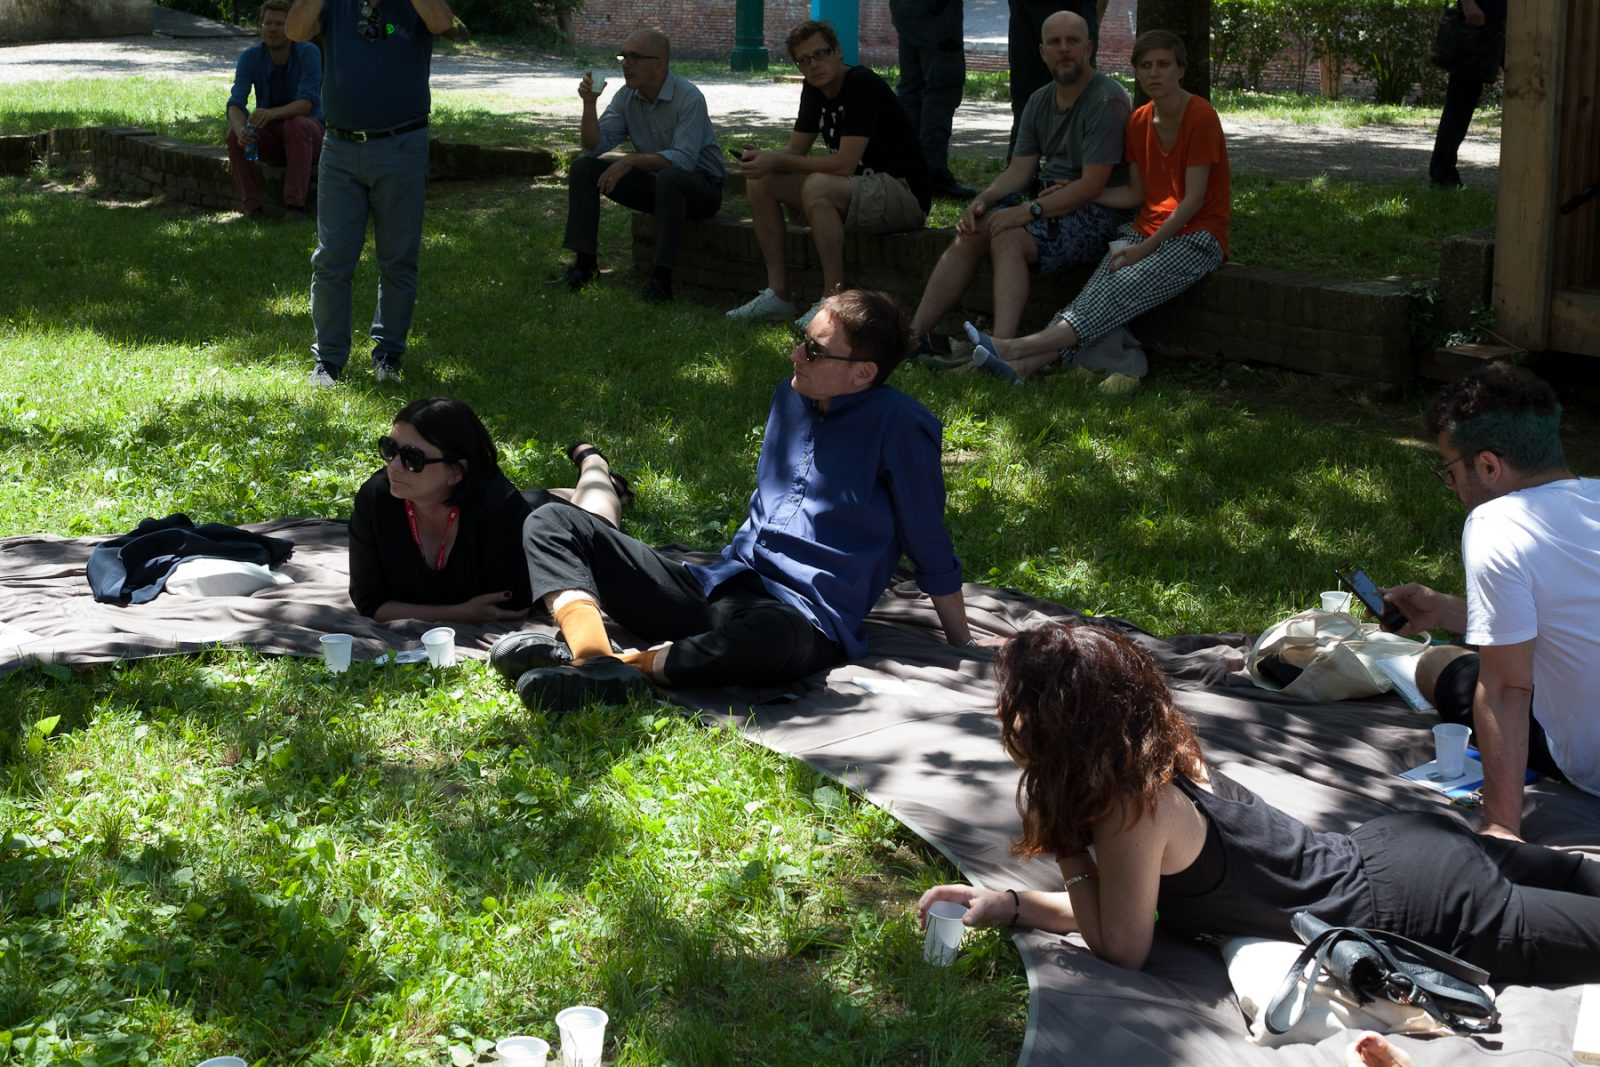 Amplifying Nature book lunch in front of the Polish Pavilion, 2018 Architecture Biennale, Venice, Italy. Photo Anna Zagrodzka